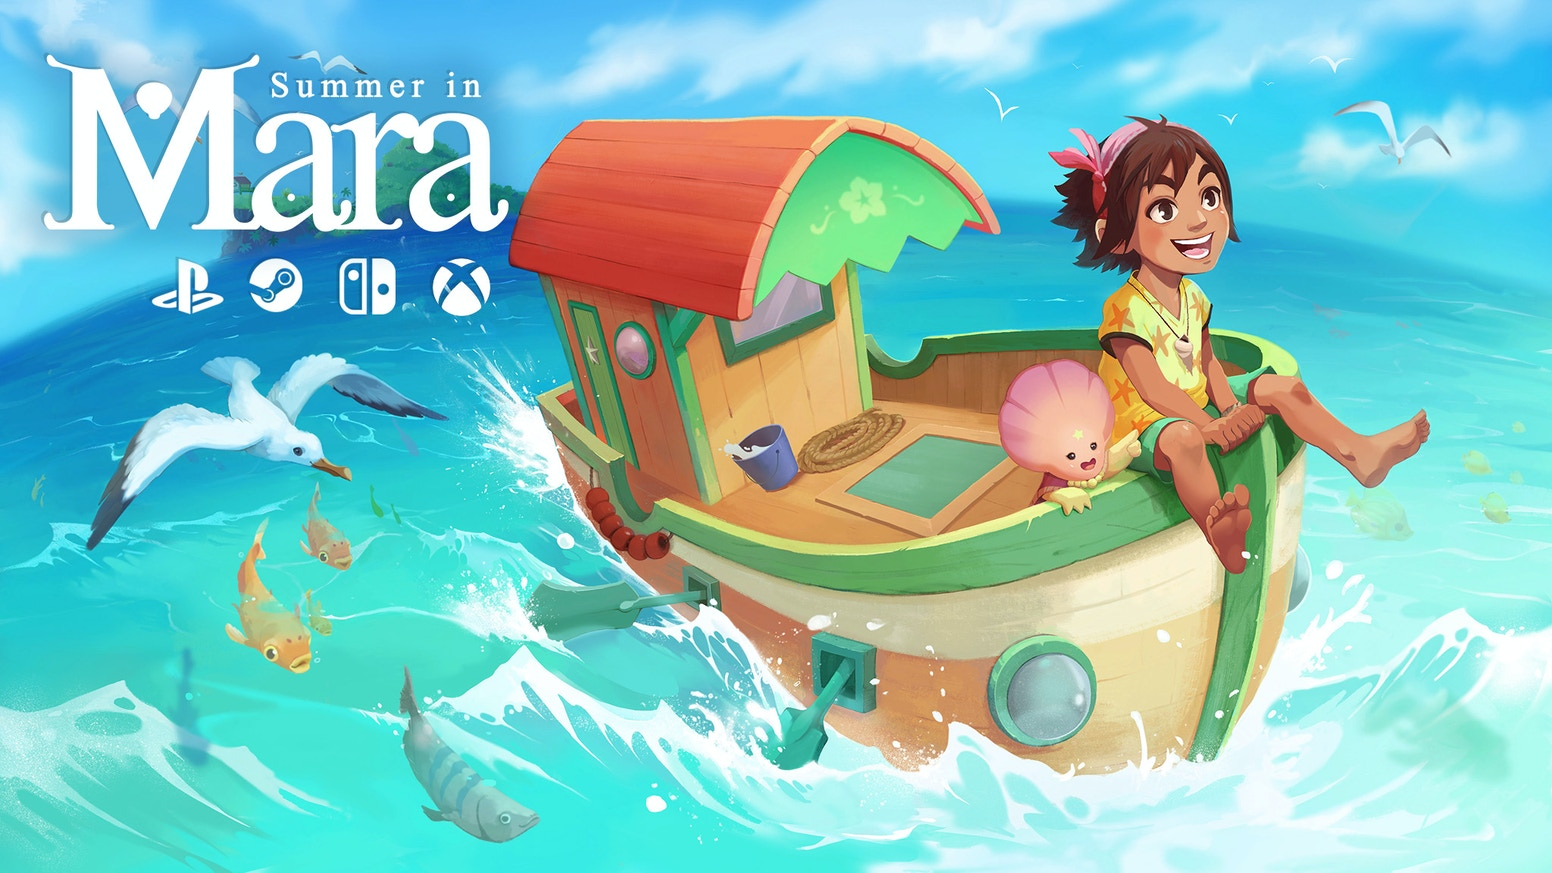 Take care of your own island in a single-player summer adventure with farming and crafting. Explore with your boat. PS4 Switch Xbox PC